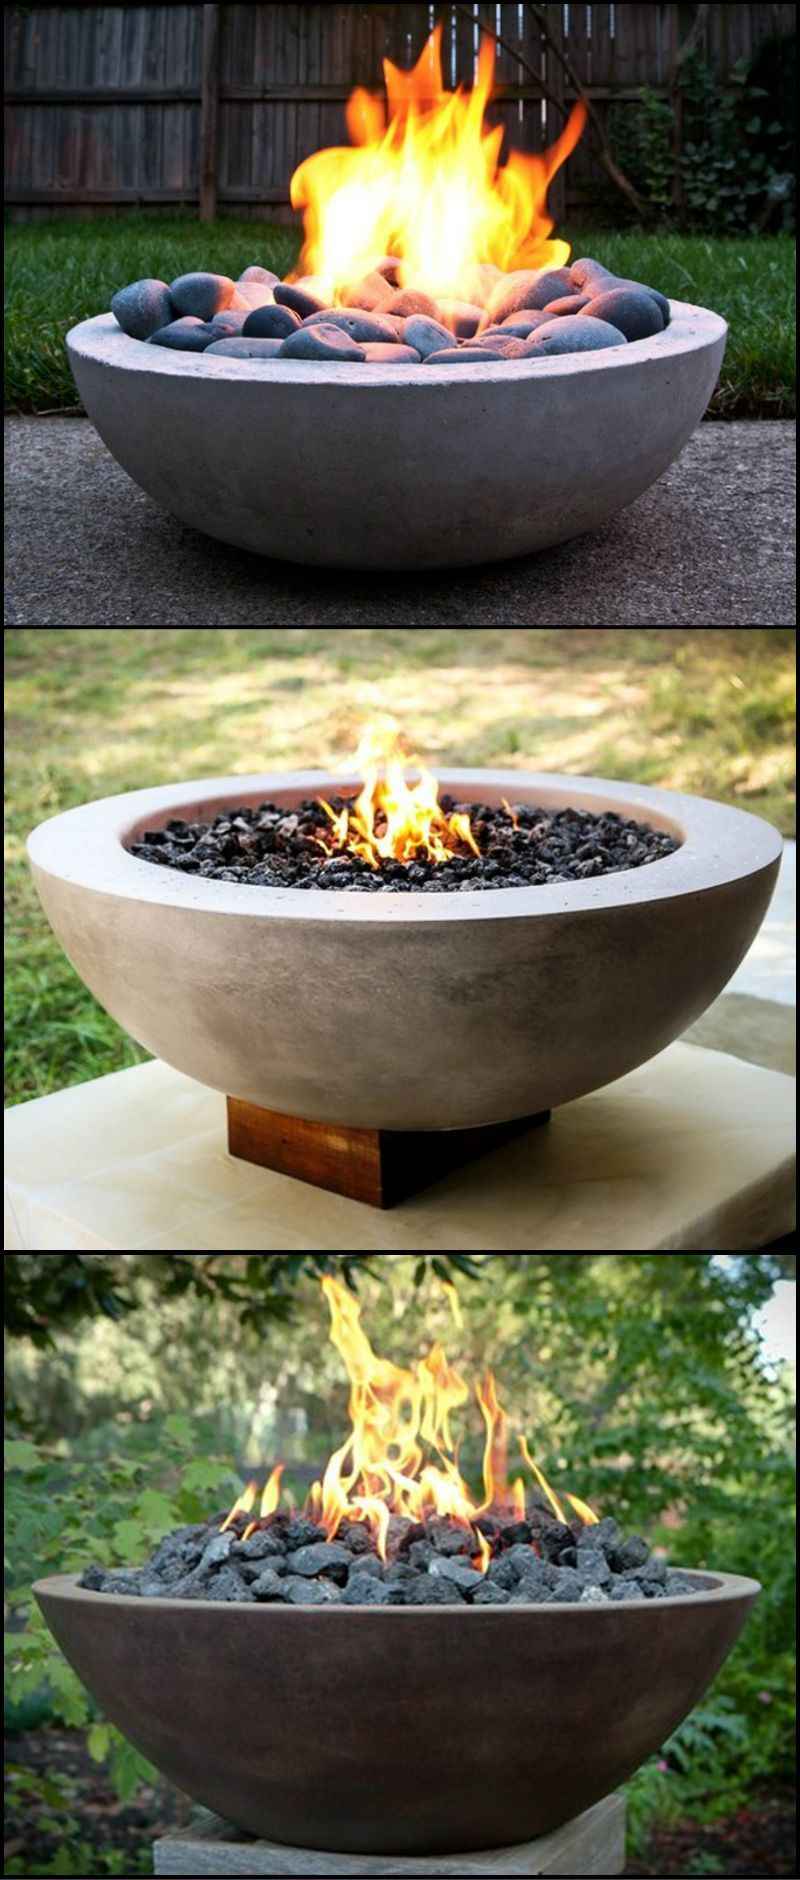 27 easy diy bbq fire pit ideas anyone can make concrete